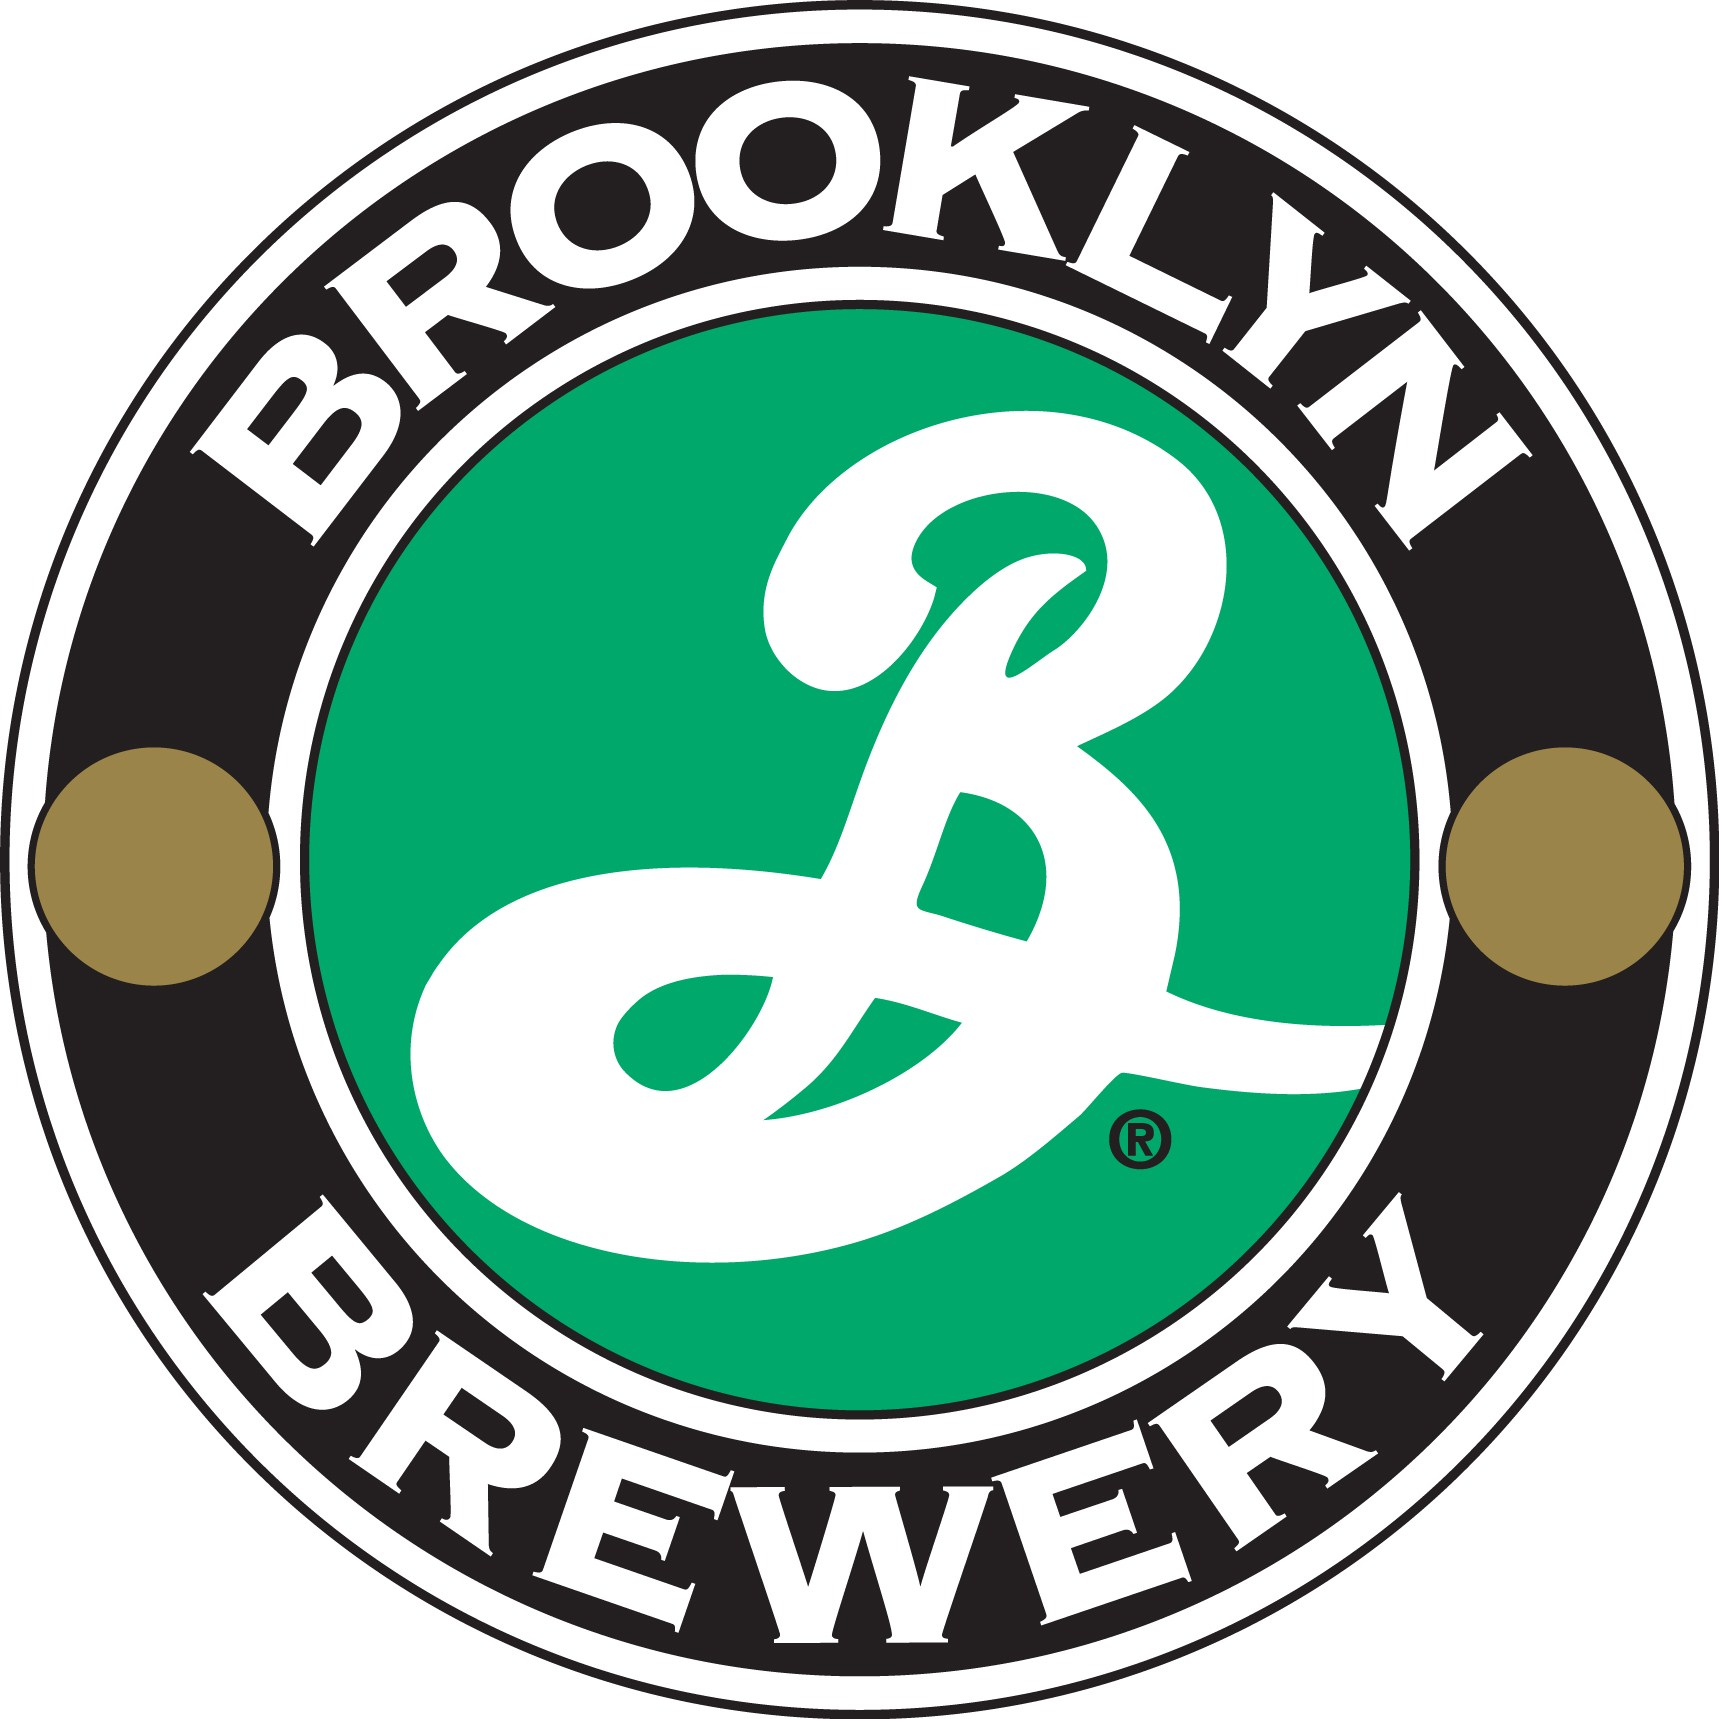 [BROOKLYN BREWERY LOGO]